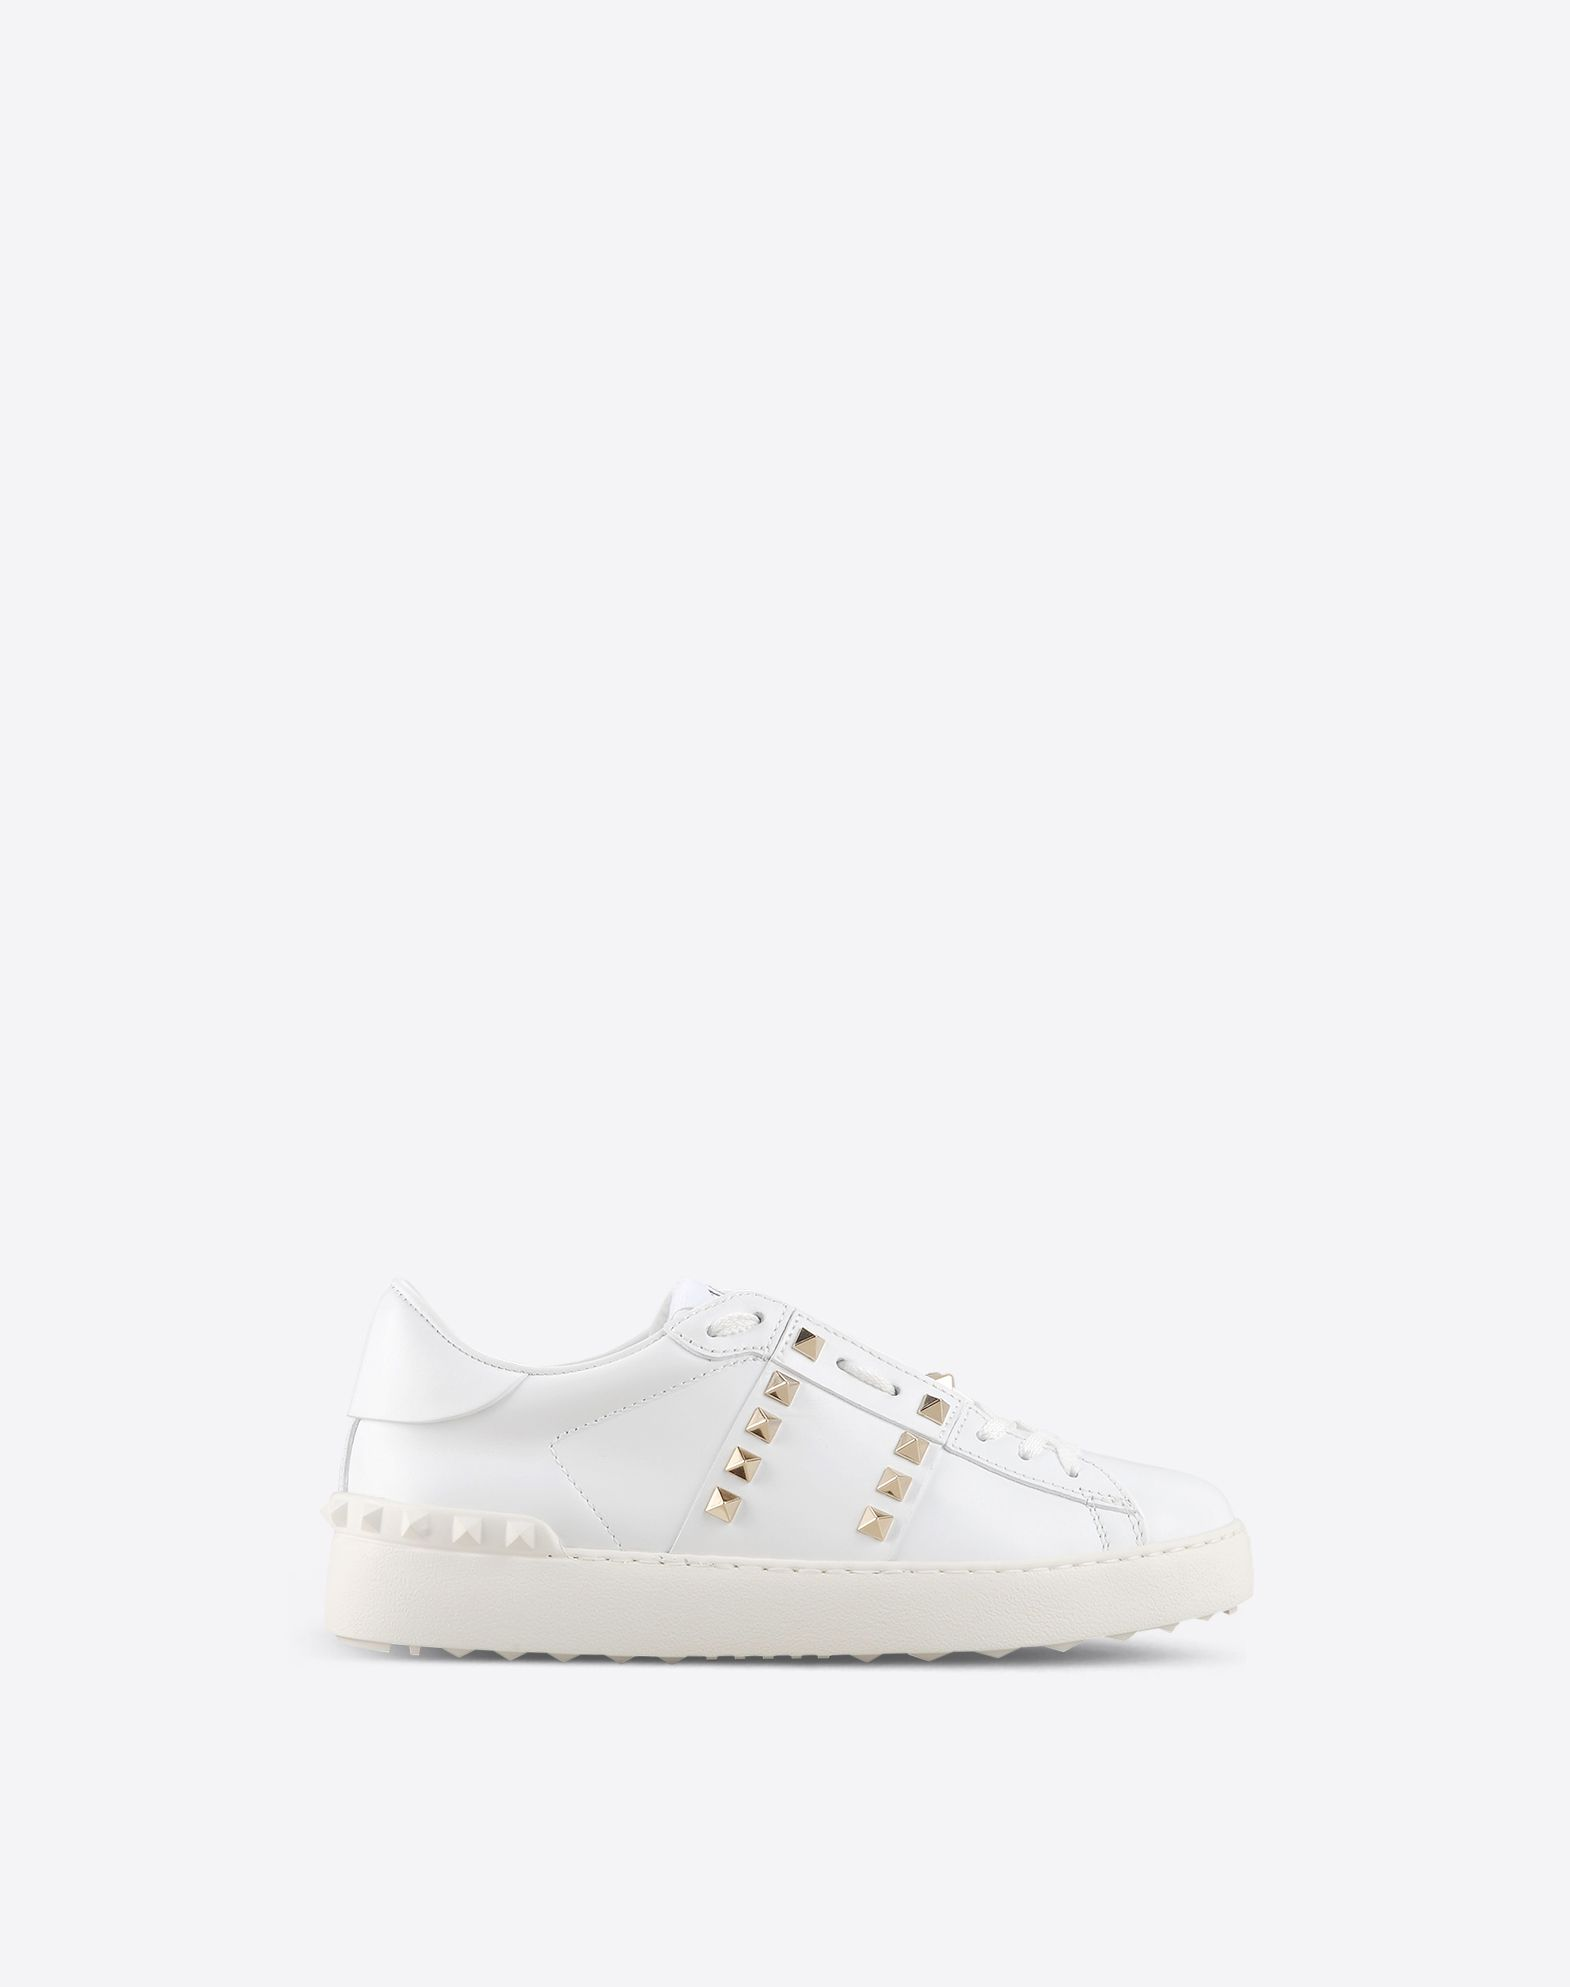 Valentino Garavani Studded Leather Sneakers - White Valentino MwDRWDzJAj